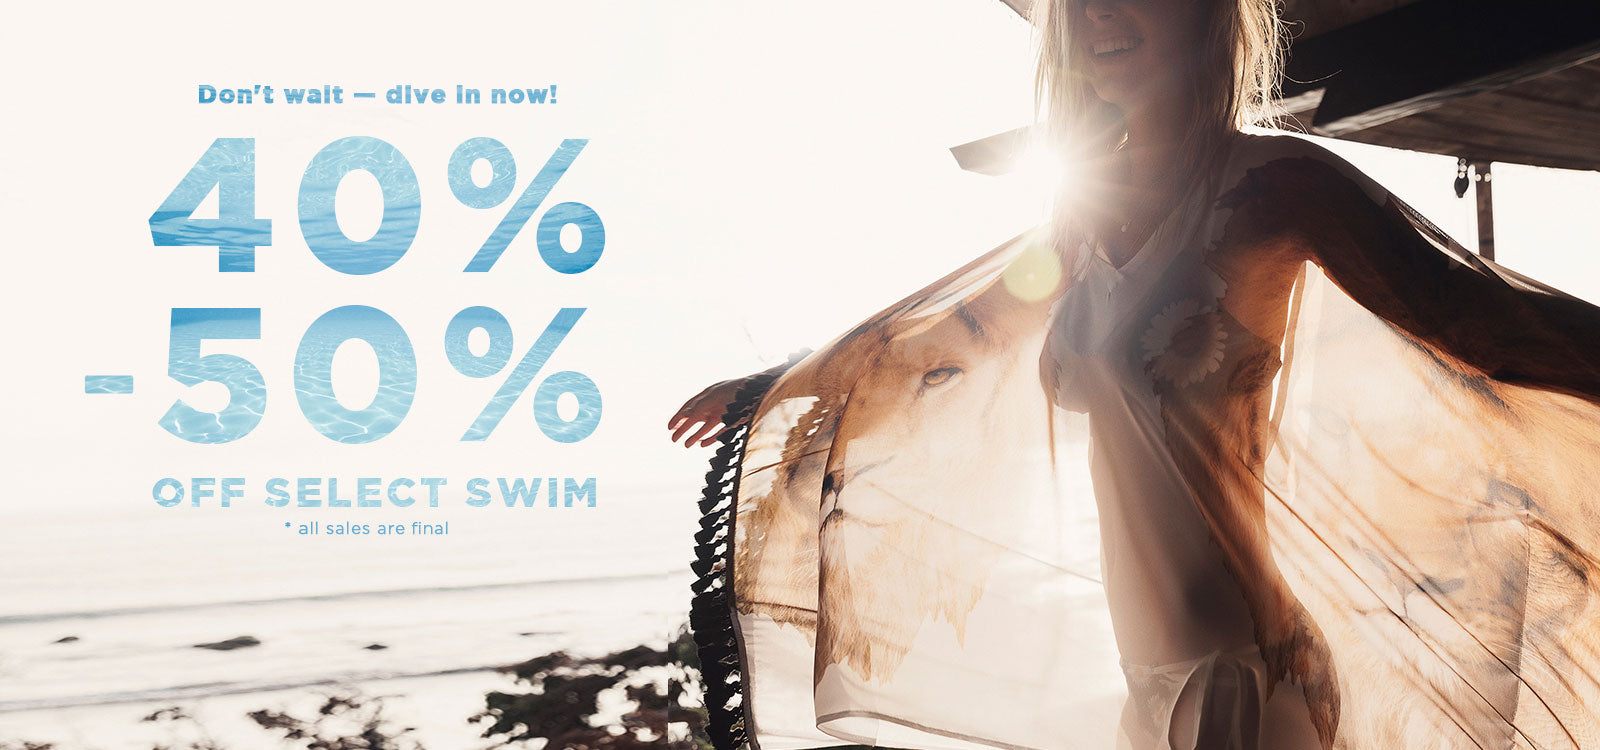 Chaser's 2019 Blowout Swim Sale